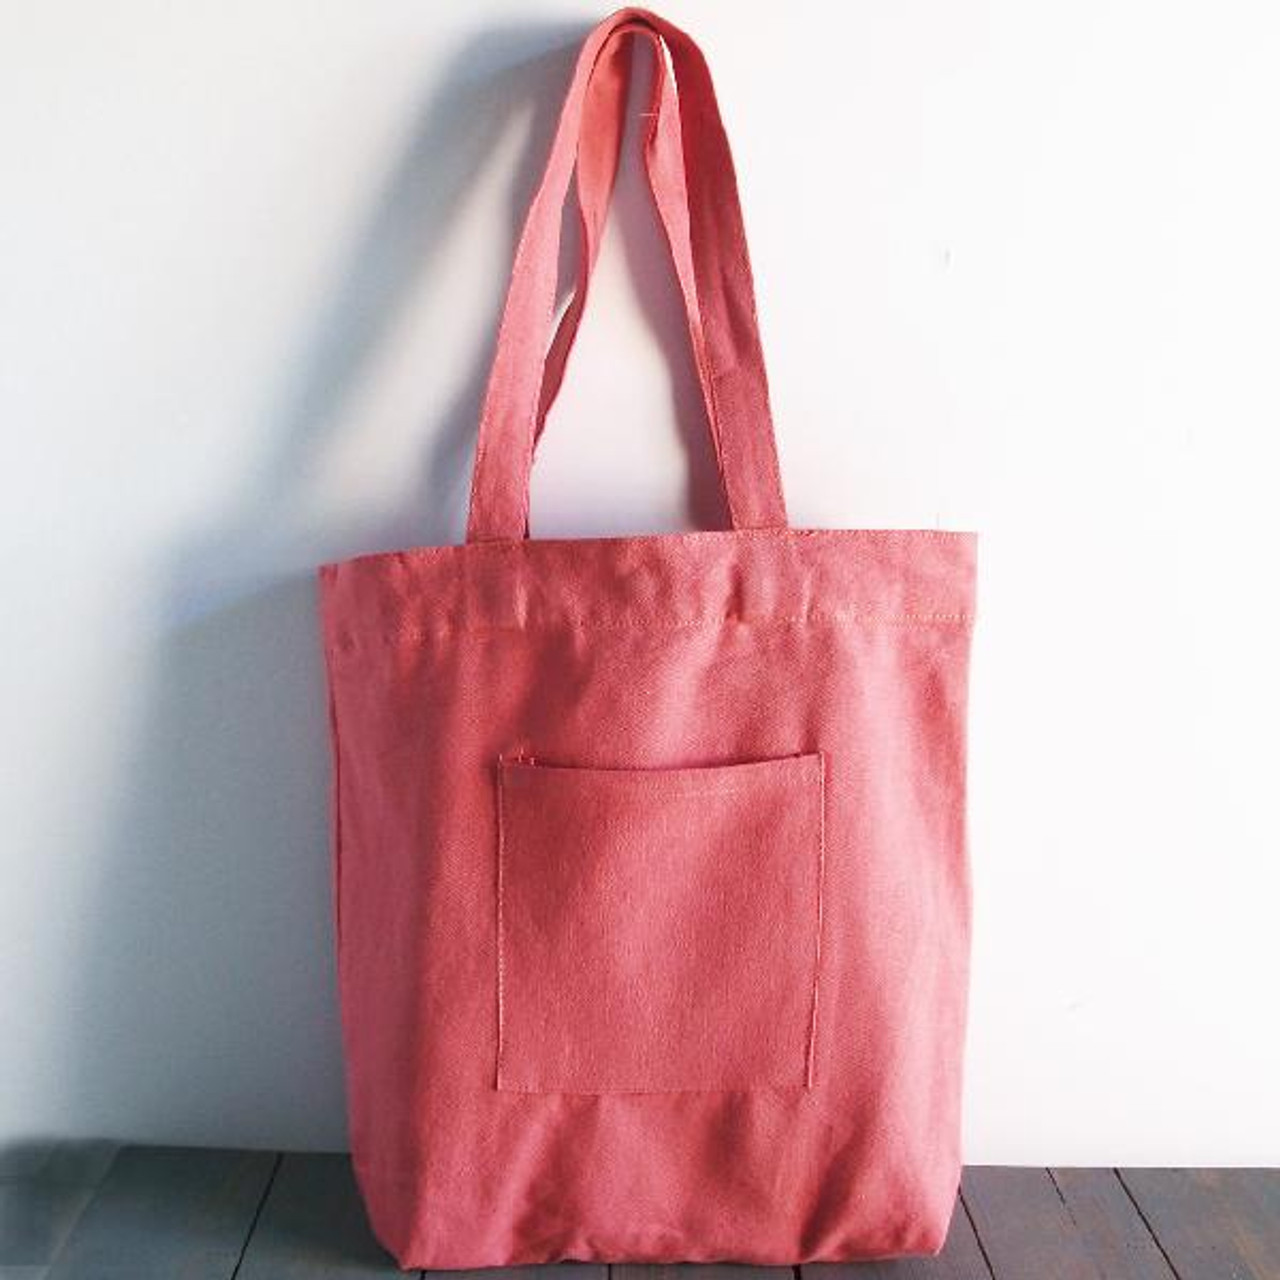 """Wholesale Canvas Tote Bags, Washed Canvas Tote Bag with Side Pockets Pink 14"""" x 14"""" x 5""""D, B799-75 